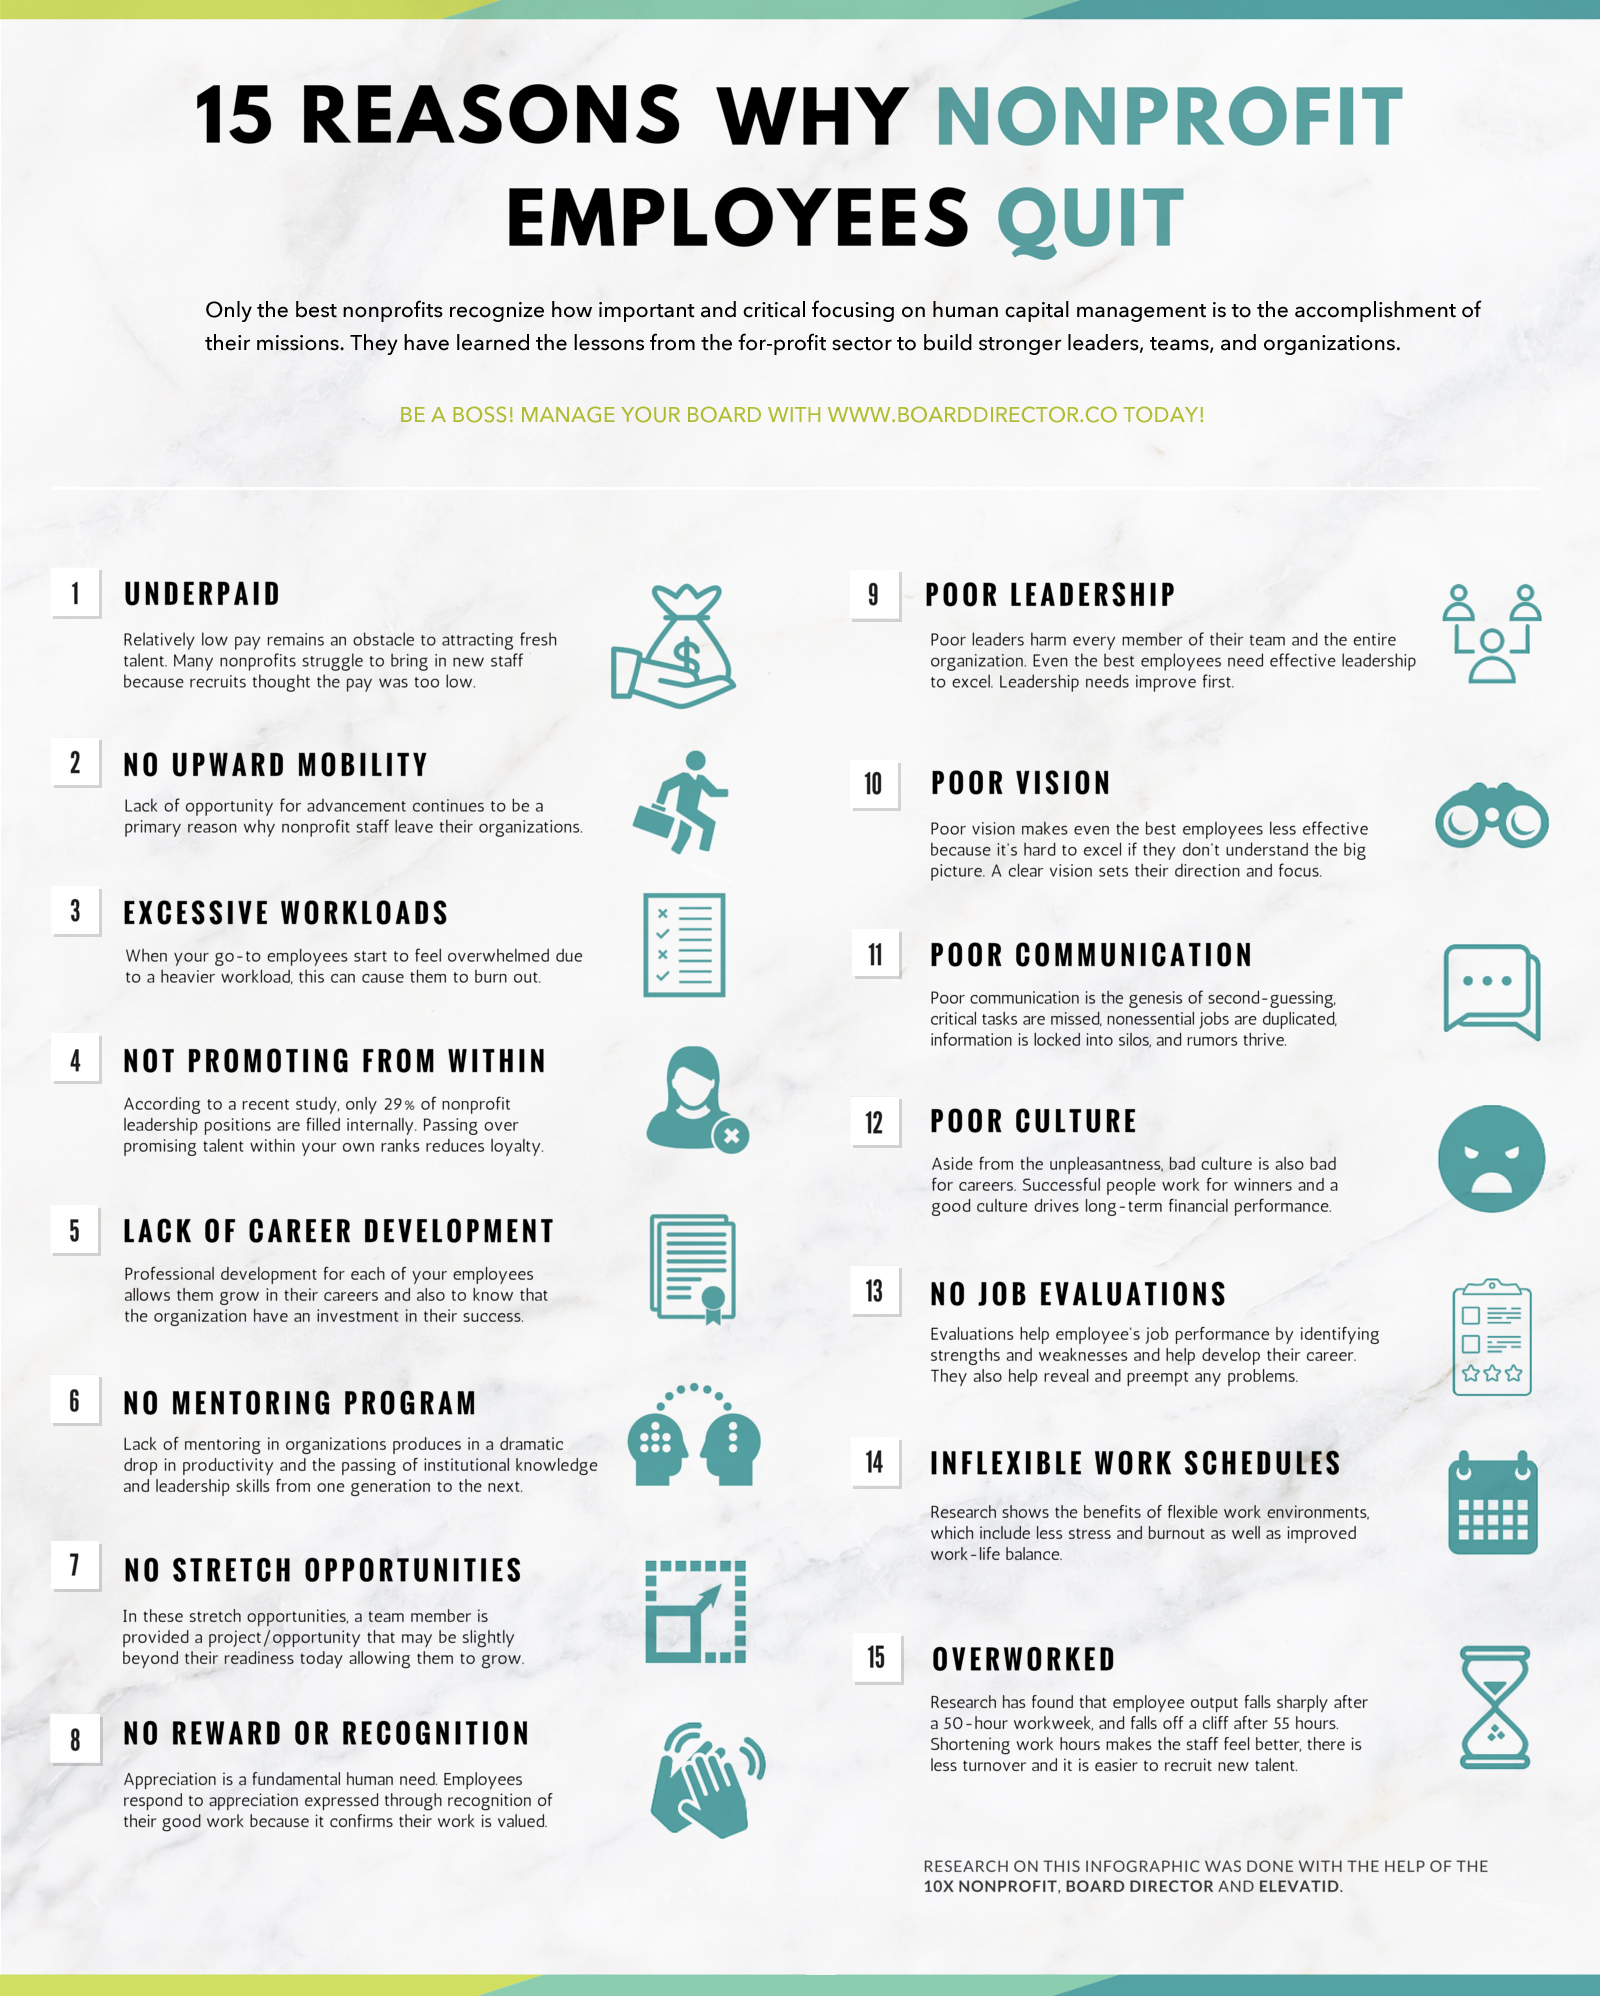 15-reasons-why-nonprofit-employees-quit1